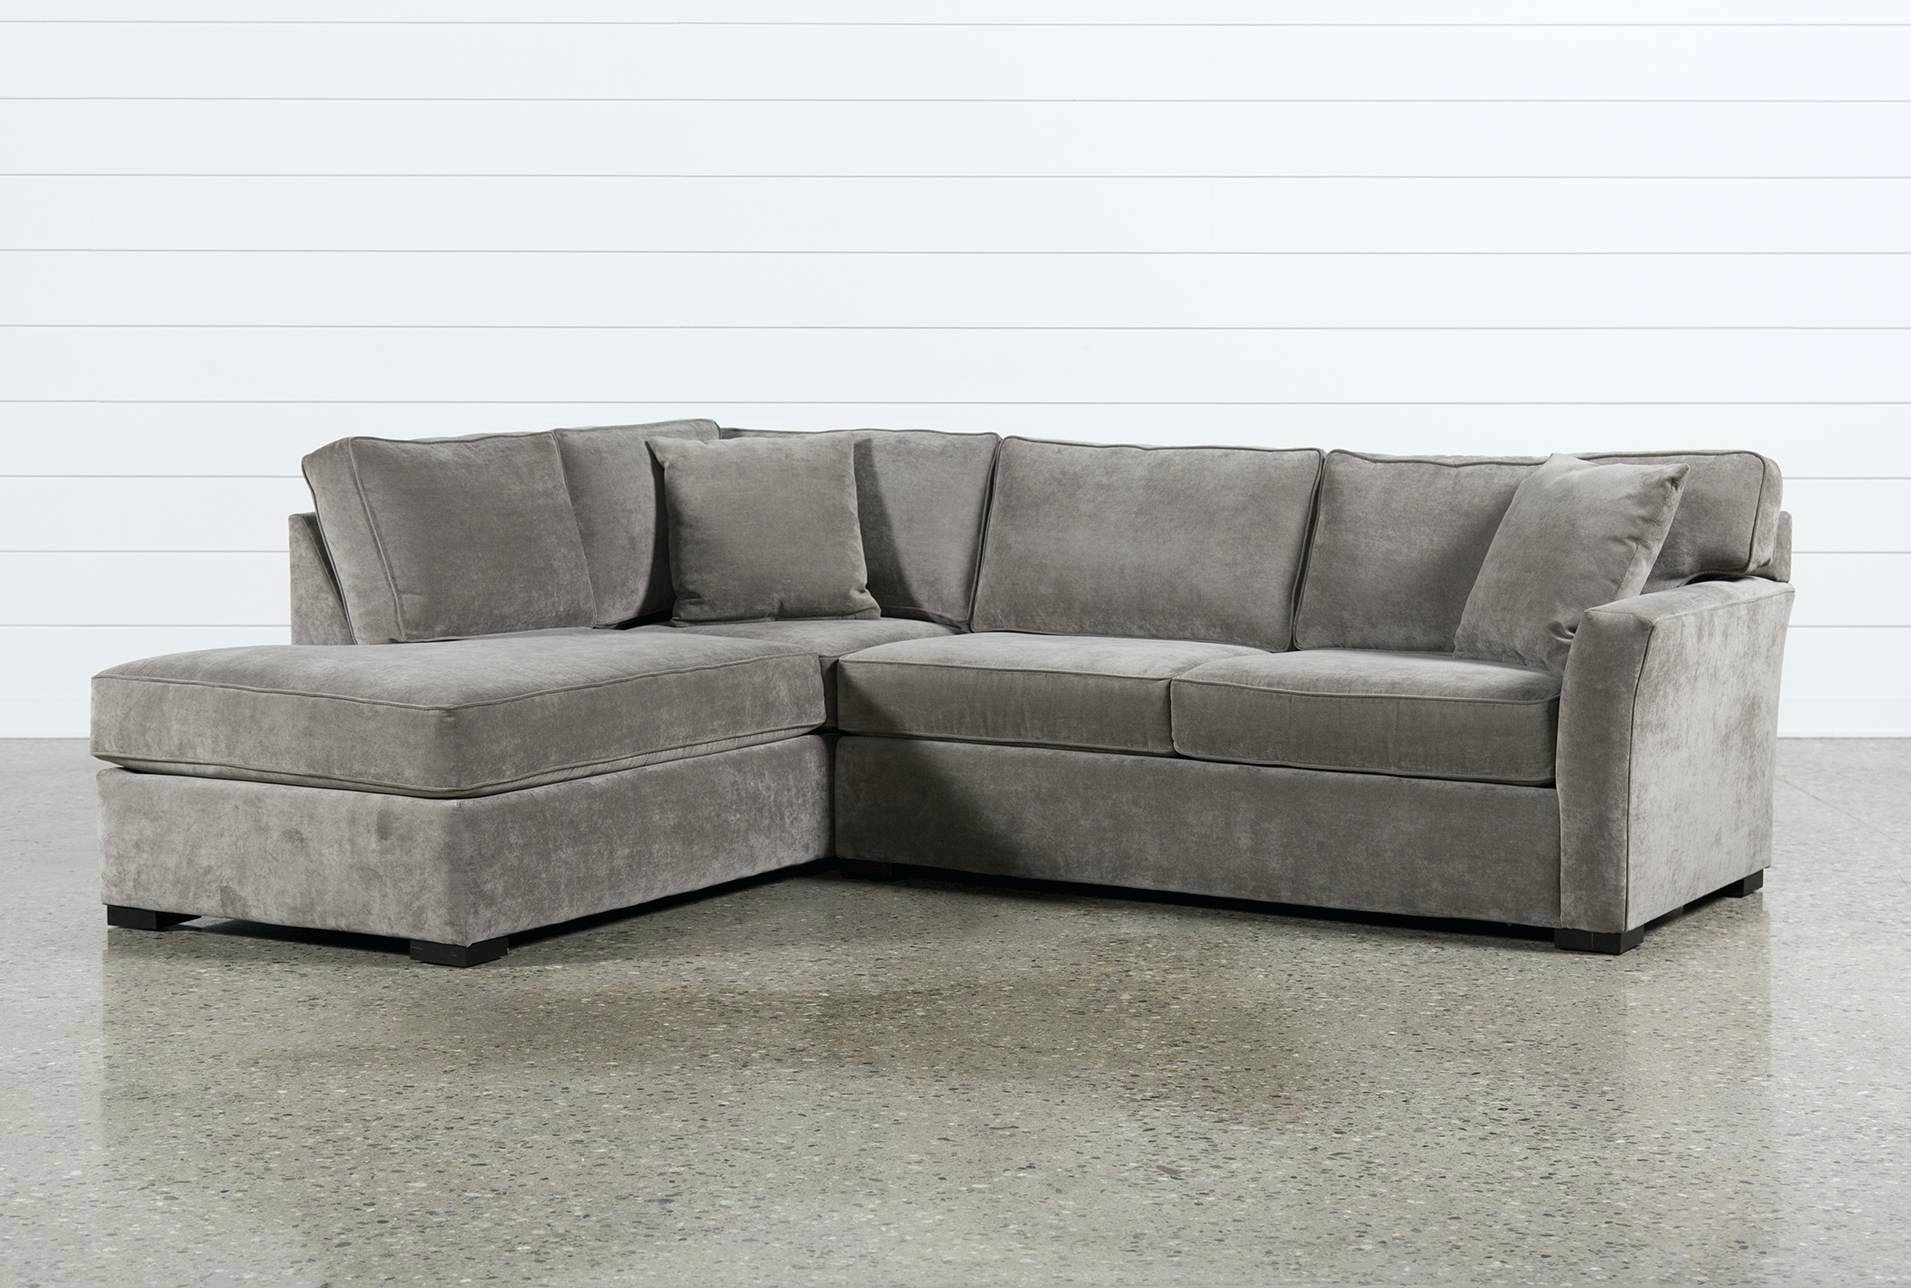 Small Sectional Sofa Bed Sofas With Recliners Amazon – Skipset Inside Sectional Sofas At Amazon (Image 10 of 10)